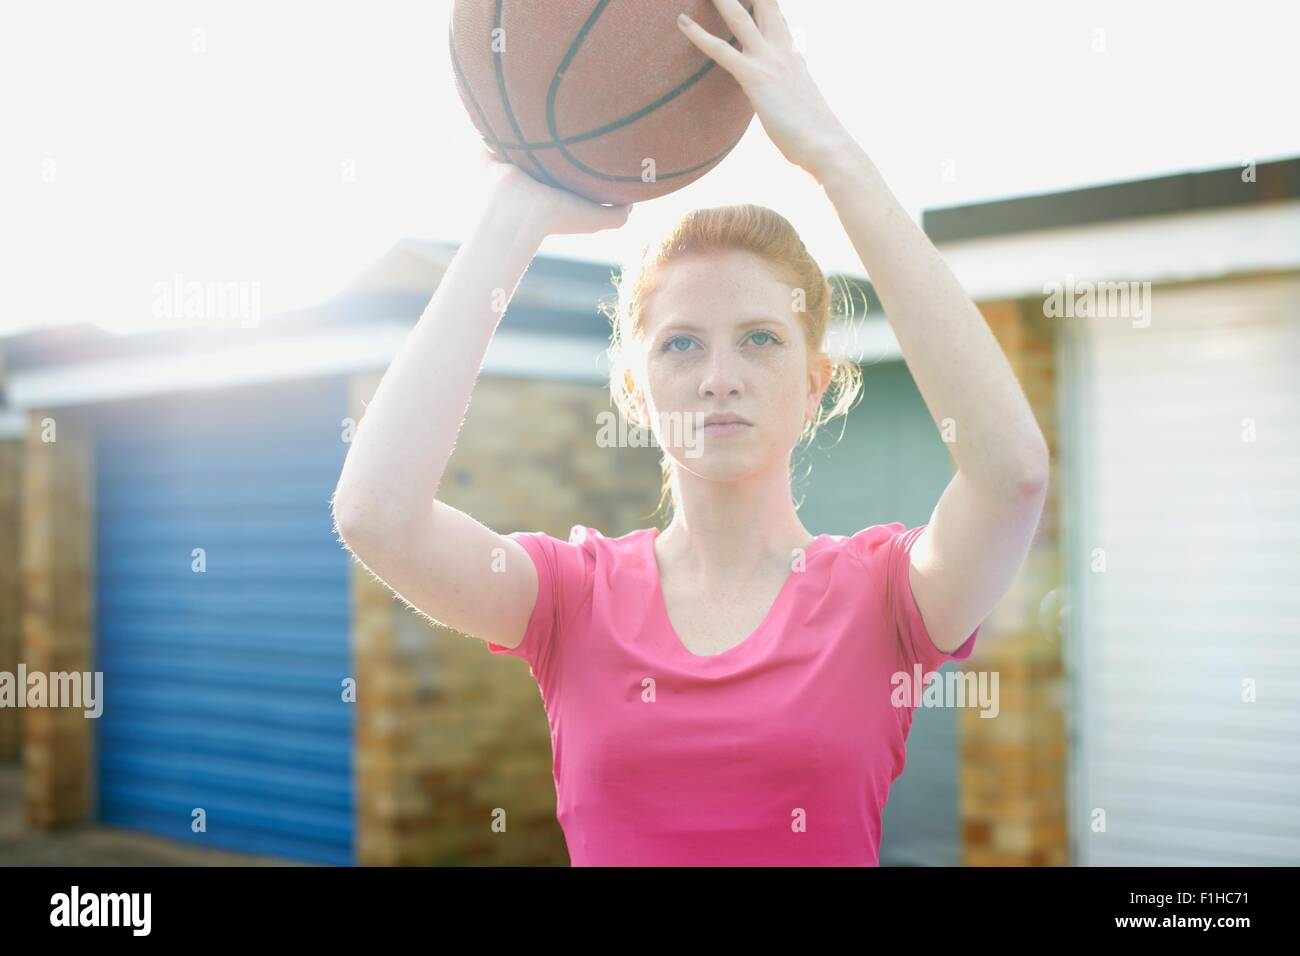 Portrait of woman holding basketball above head - Stock Image